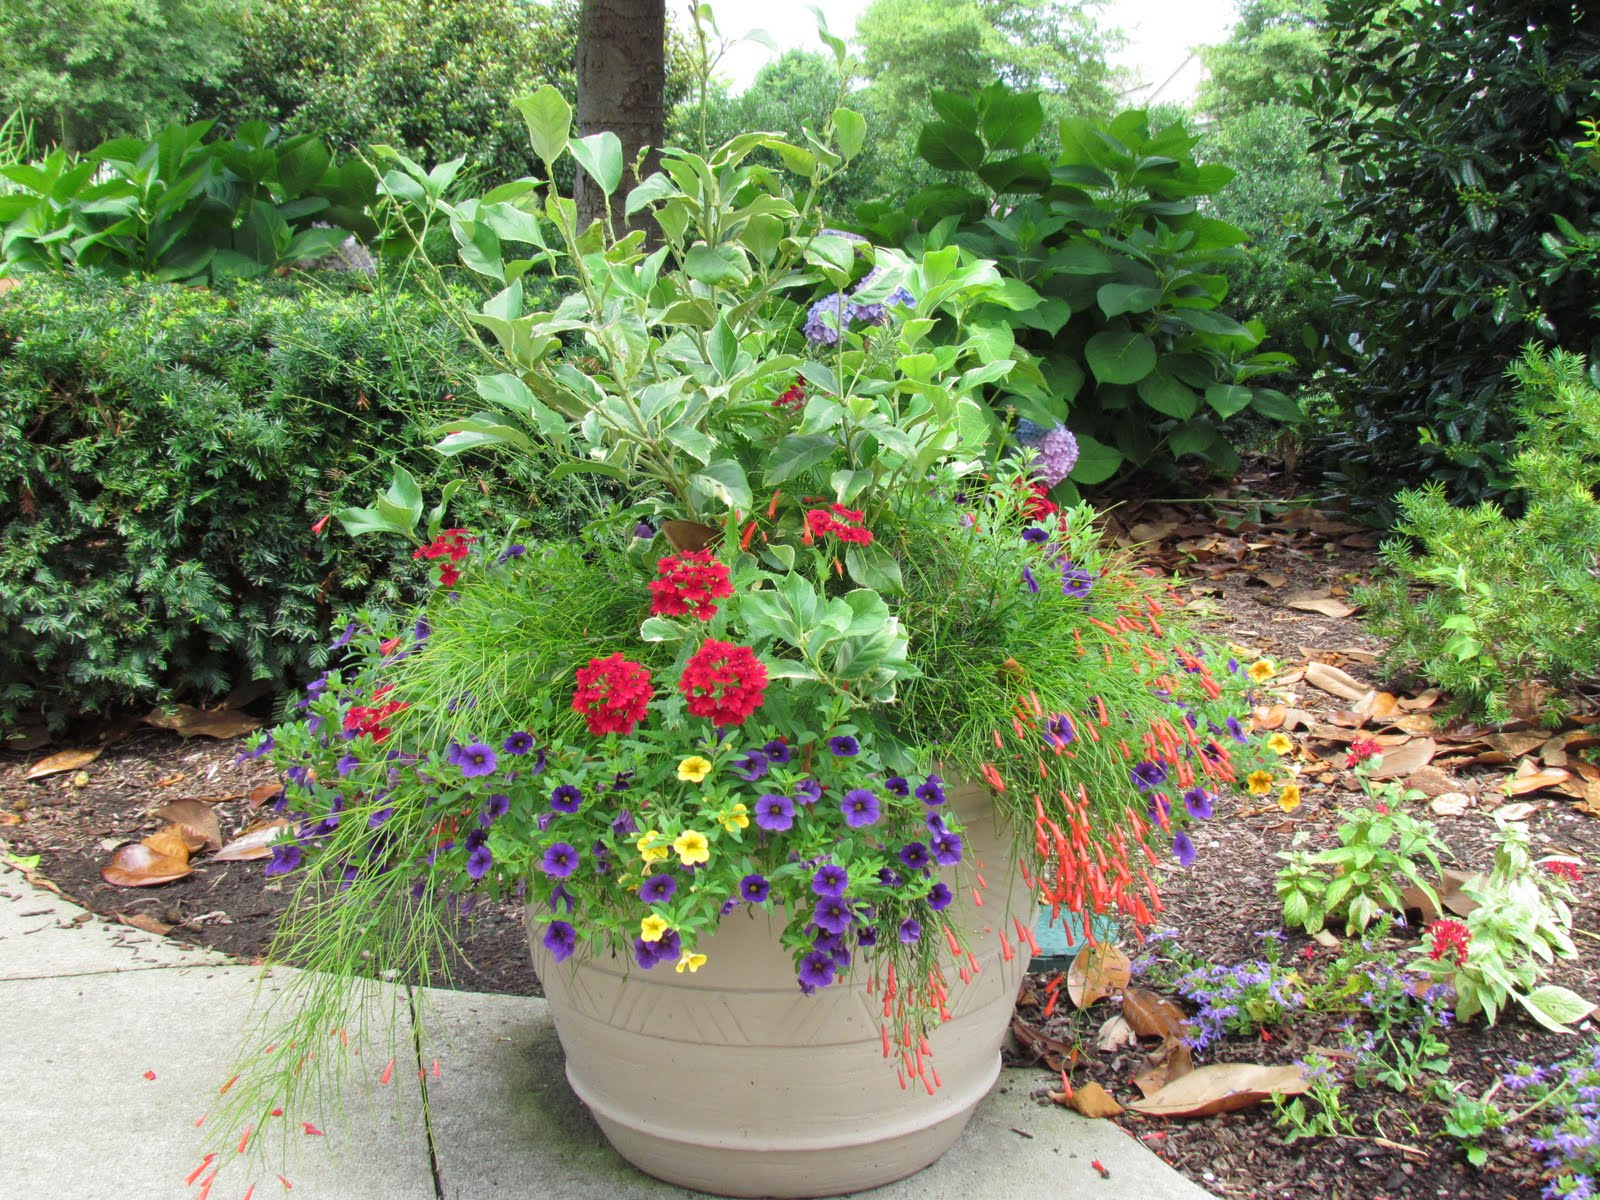 Bwisegardening day 365 of 365 days of container gardening for Container gardening ideas